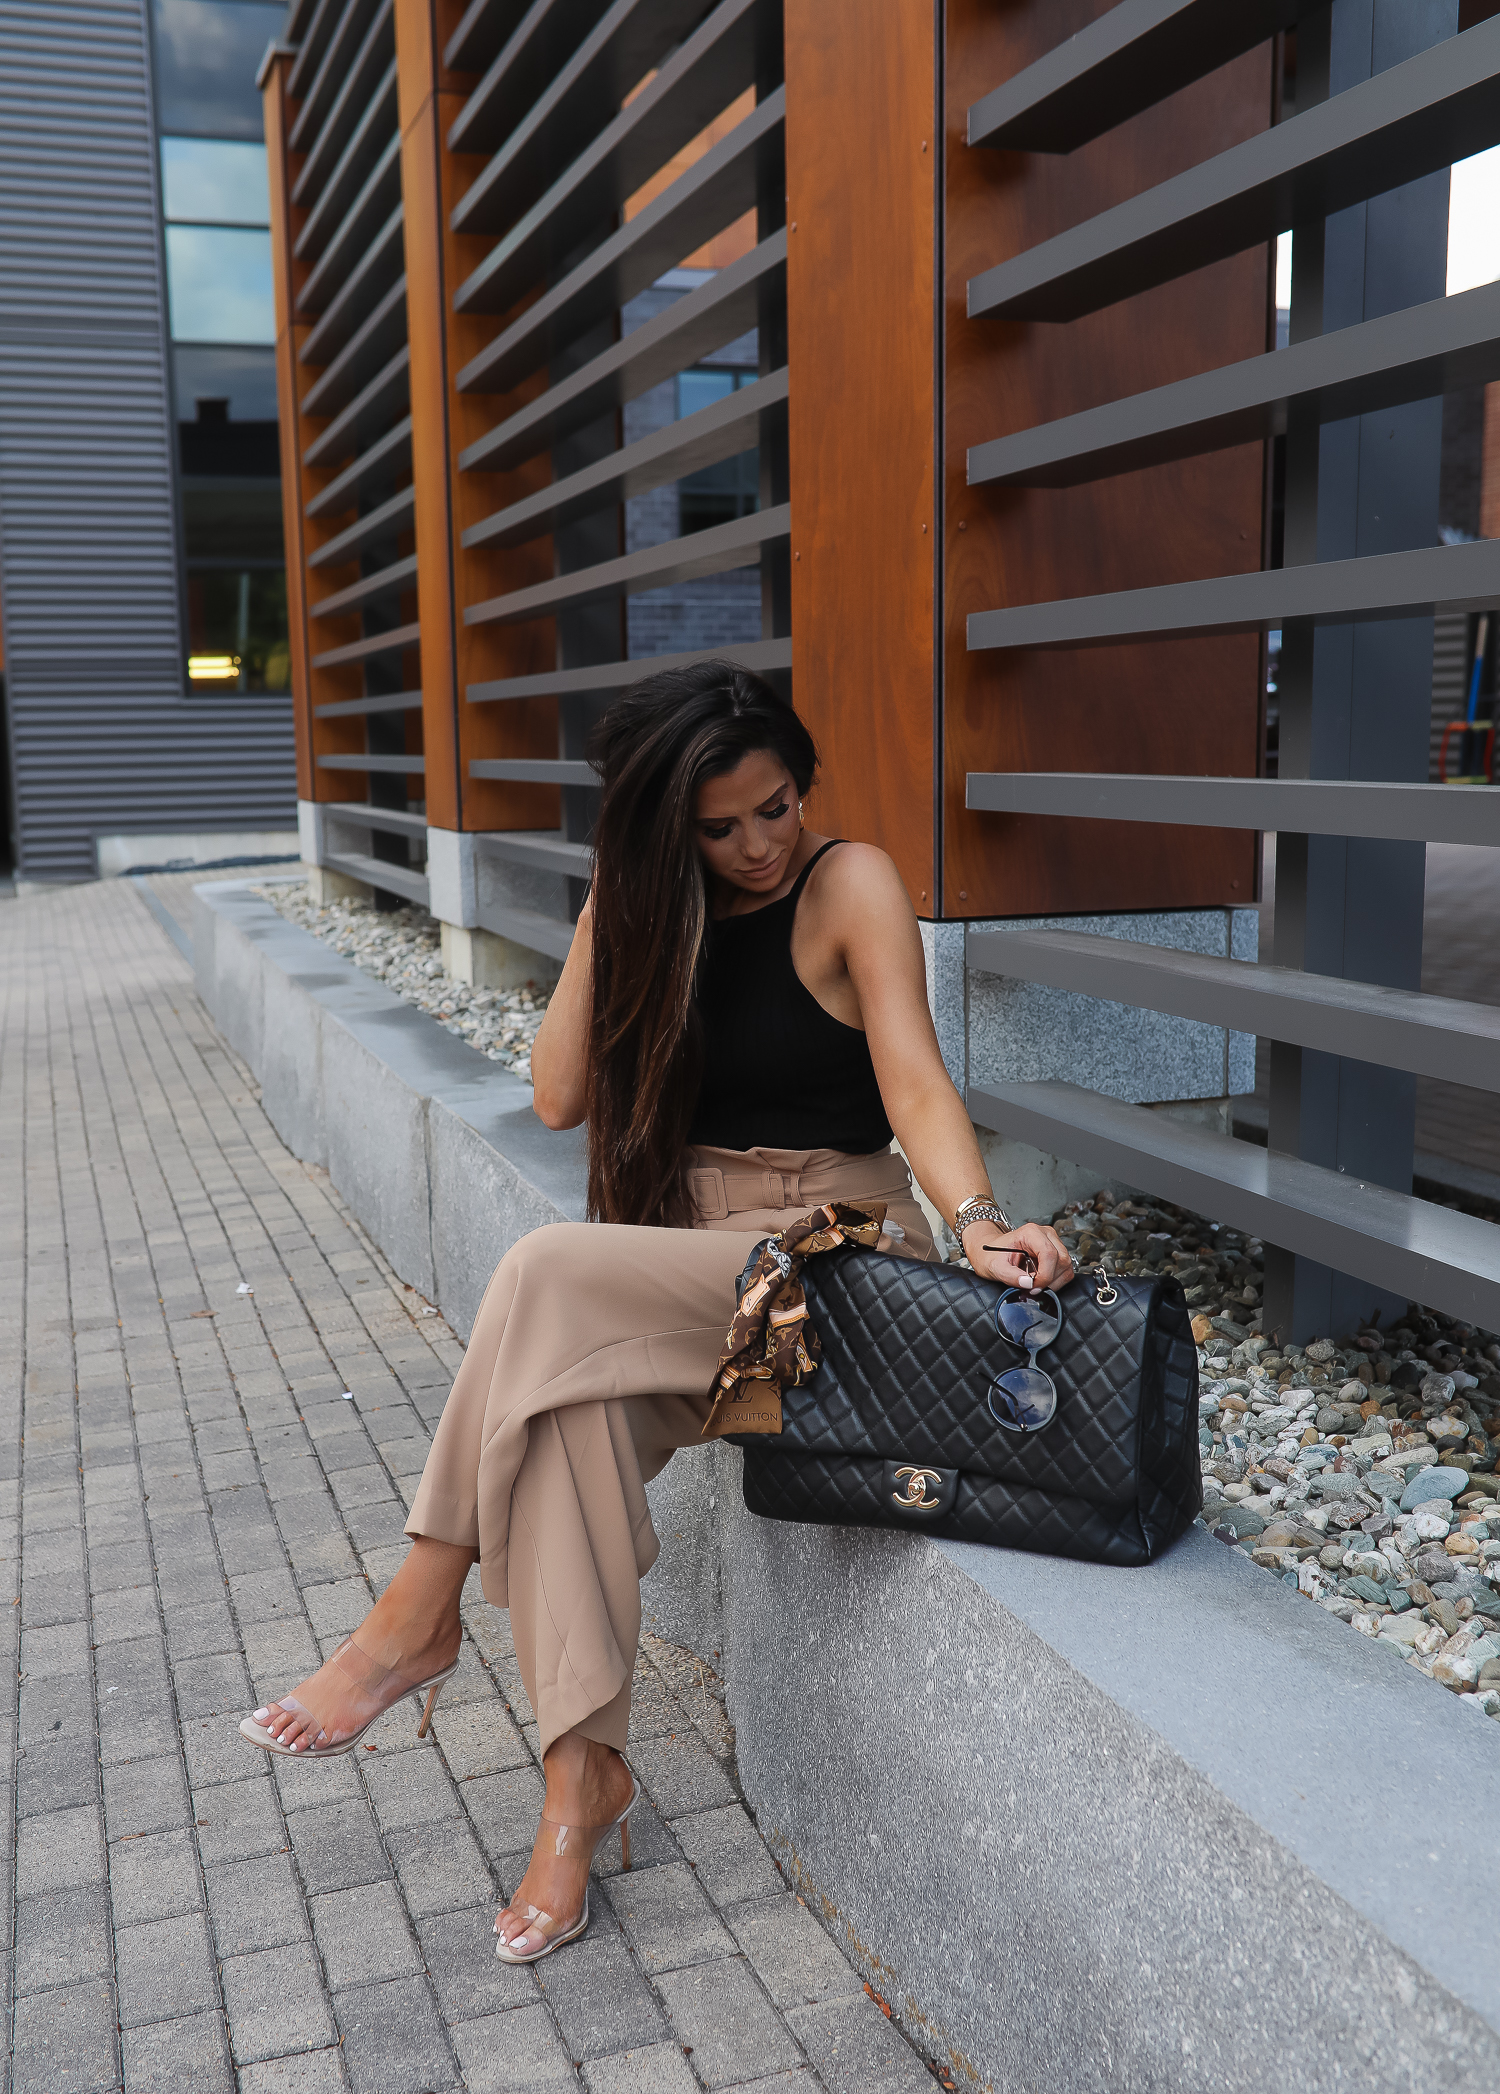 fall fashion outfits pinterest 2019, chanel XXL flap airport bag black, High waisted paper bag pants, emily ann gemma, express fall outfits 2019-2